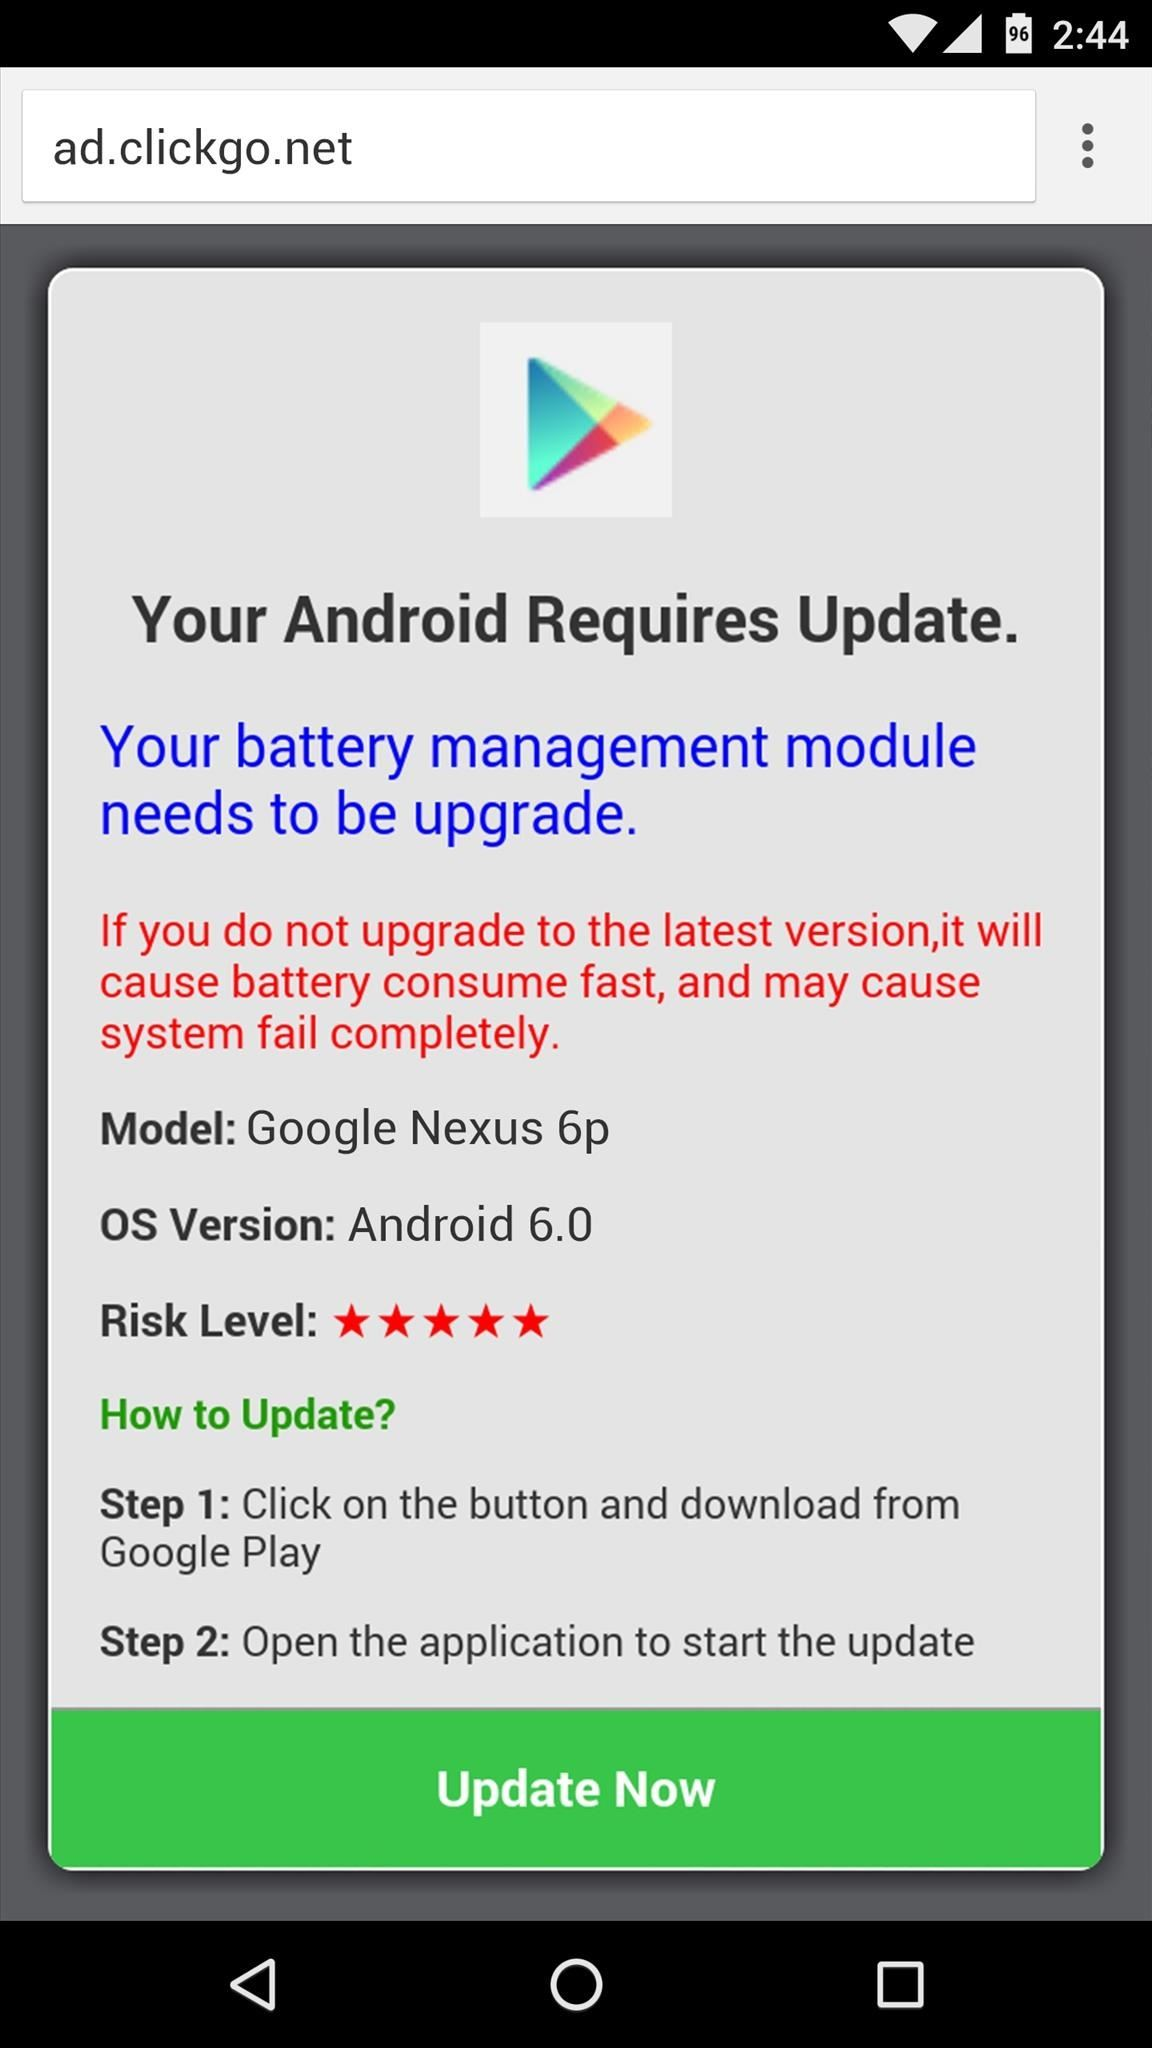 How to Update My Android? Has Newer Version for My Phone?